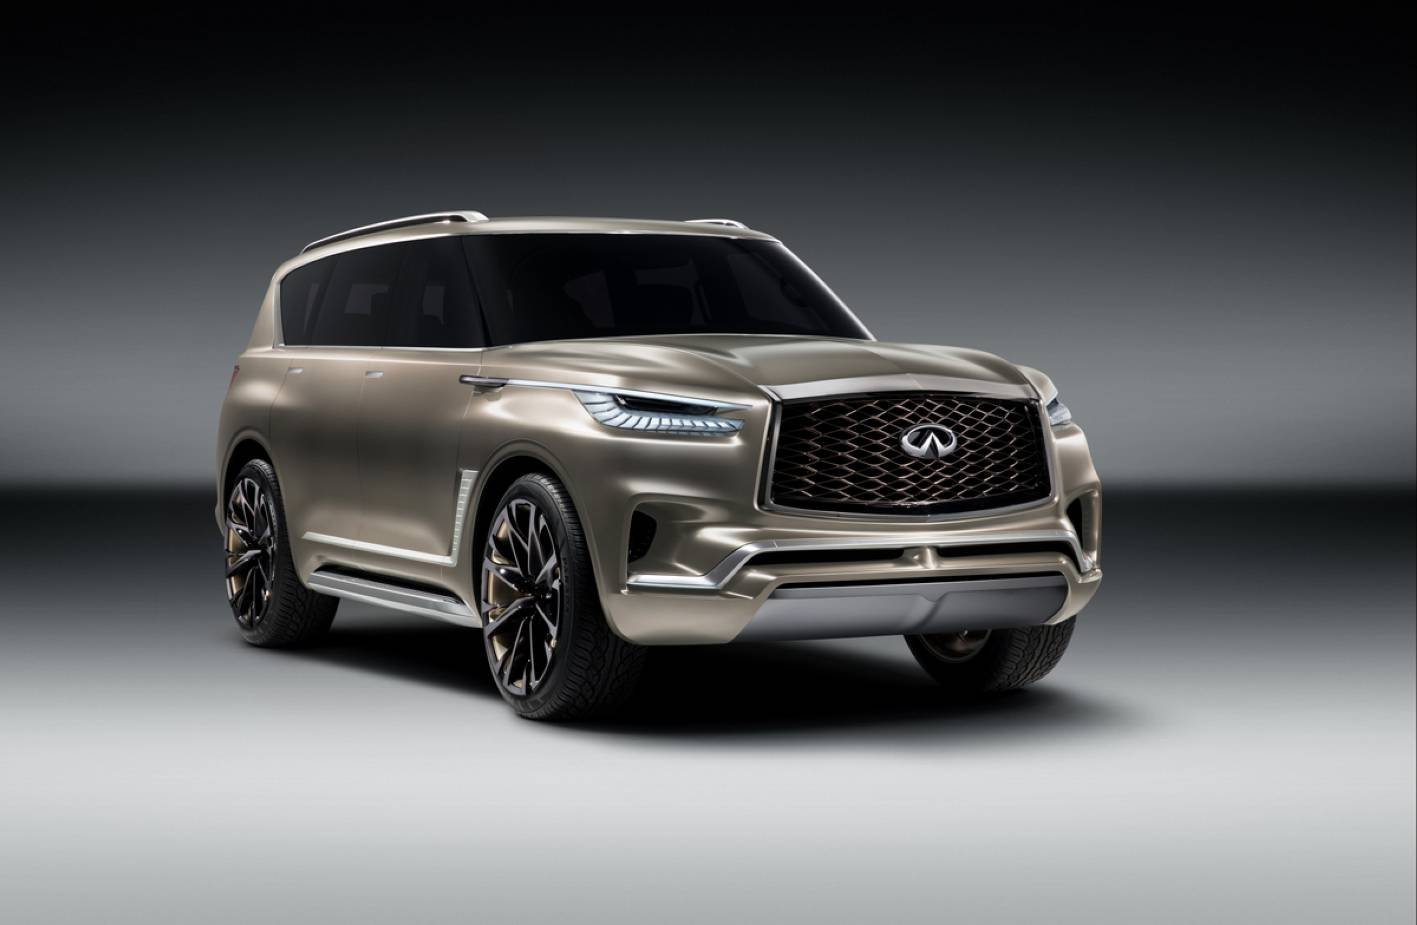 Infiniti QX80 Monograph. Significantly less ugly